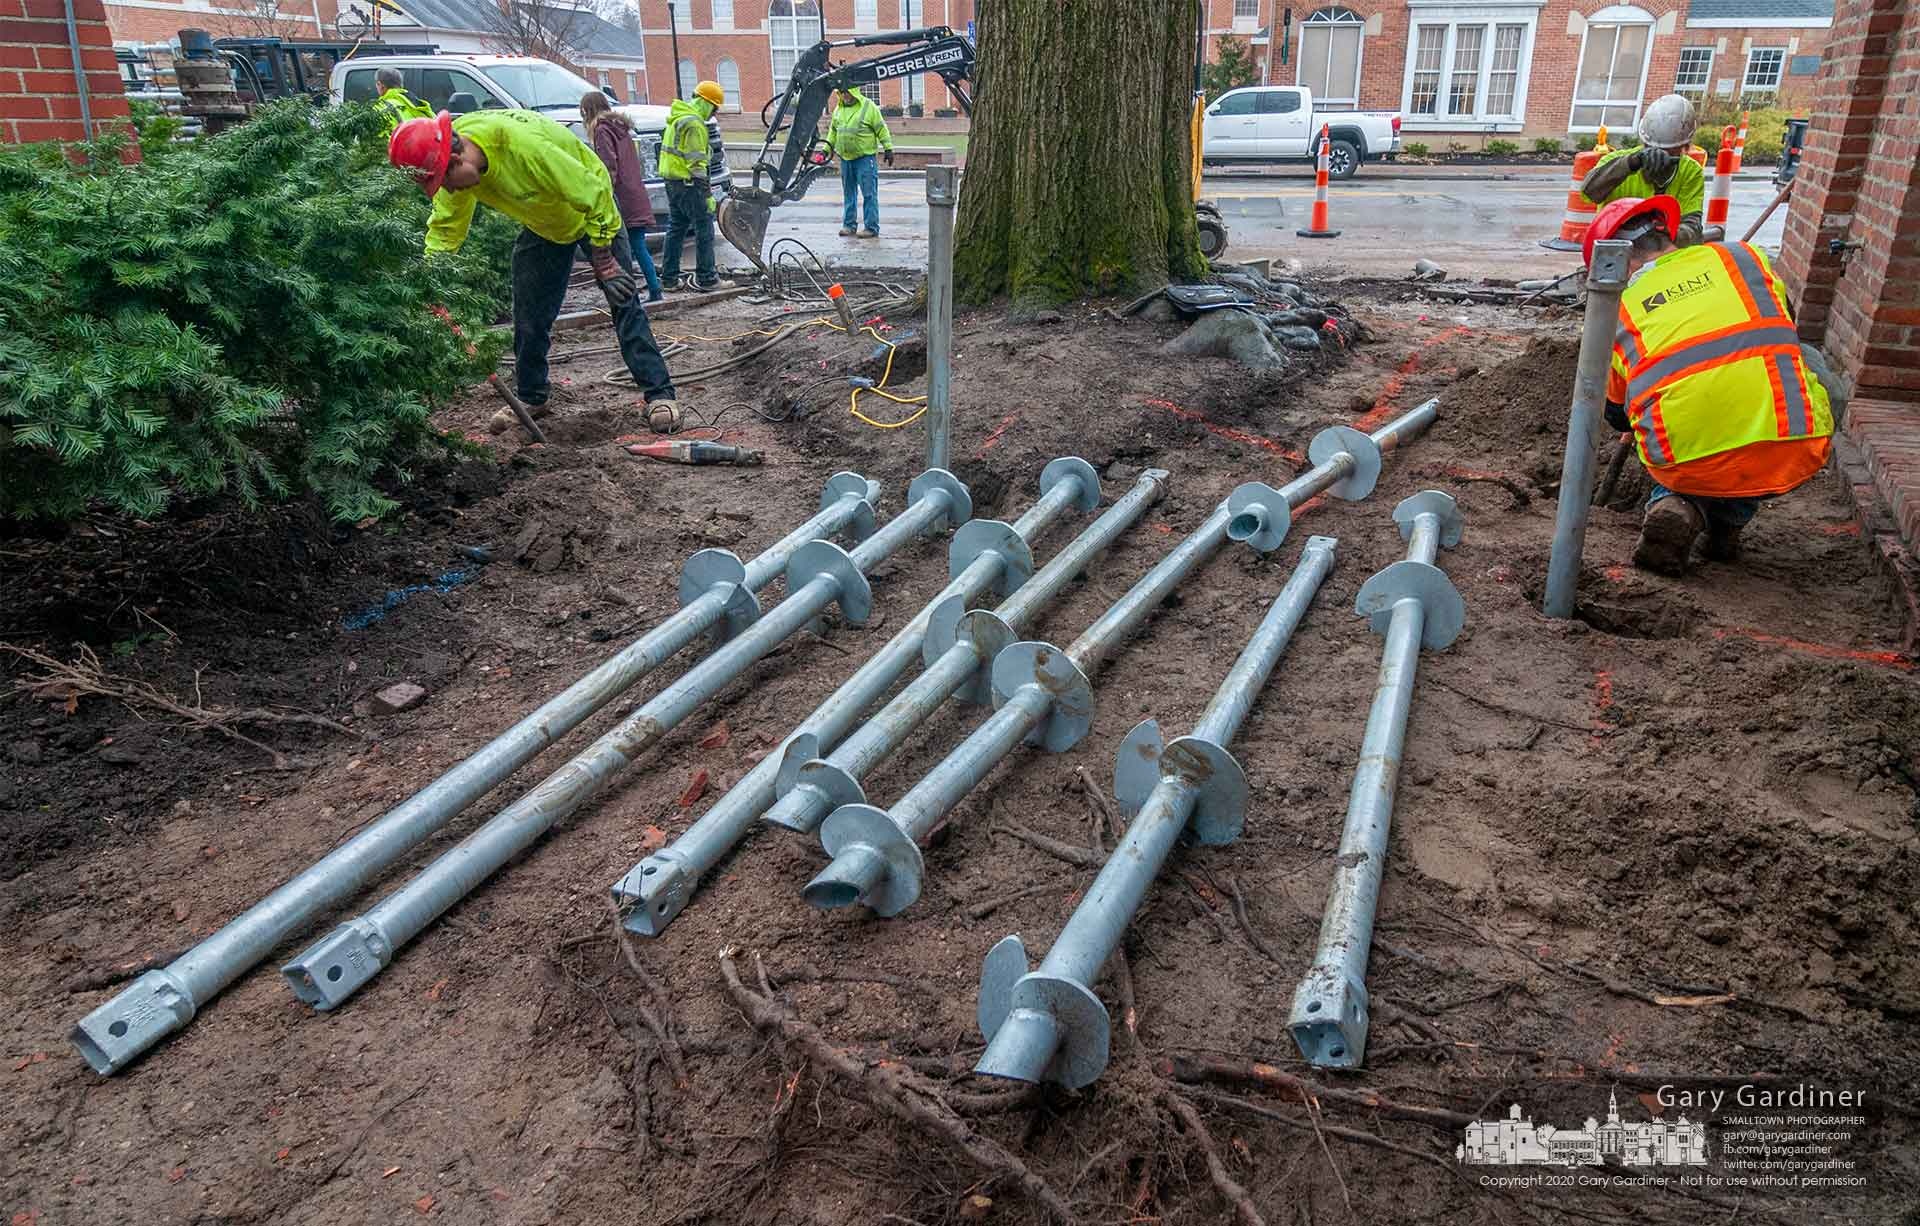 A work crew installs steel floating anchor posts around the heritage oak tree next to Java Central. The posts will eventually hold a short deck that will surround the tree. My Final Photo for March 11, 2020.